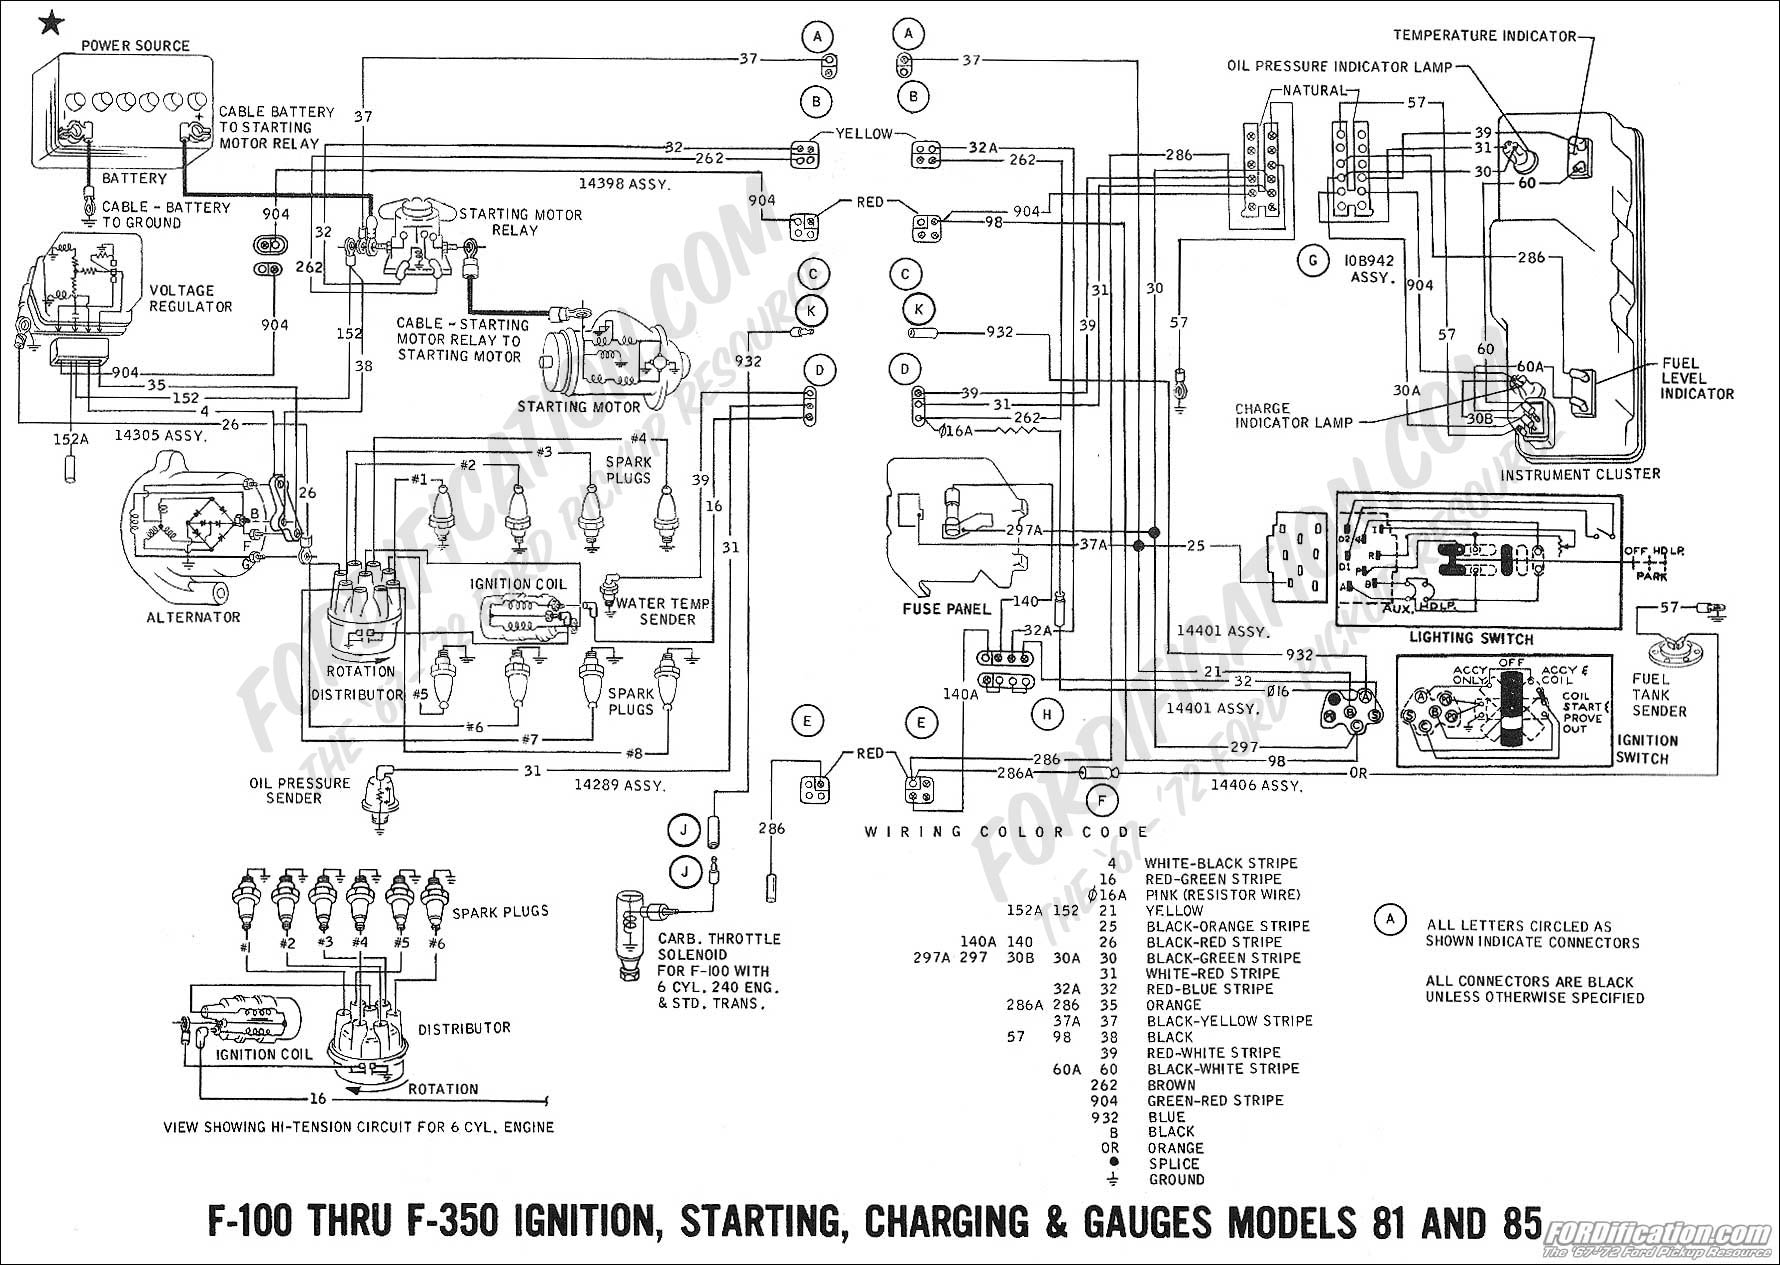 hight resolution of wiring schematic for 1963 ford f 100 wiring diagrams scematic 1957 ford f100 headlight 1957 ford f100 wiring diagram